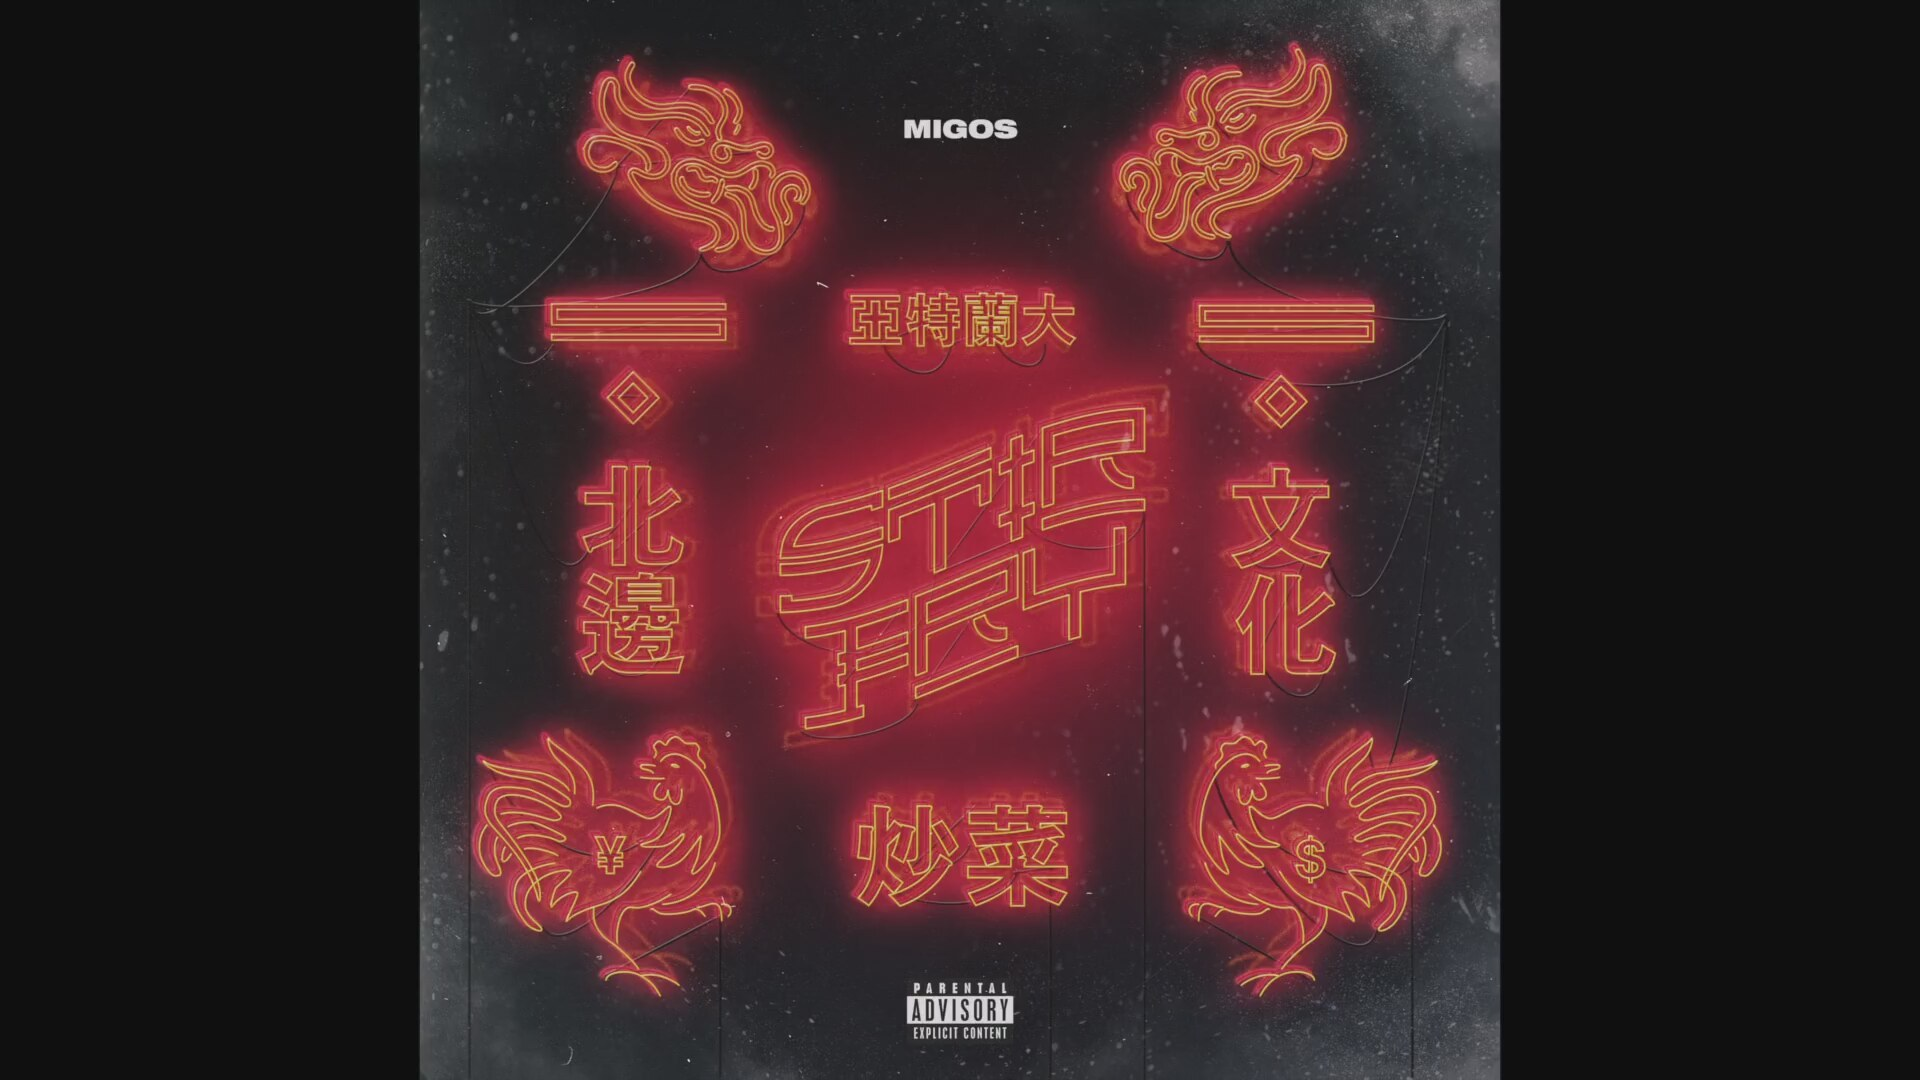 Listen To Migos' New 'Stir Fry' Joint migos stir fry 10140576 7720 1920x1080